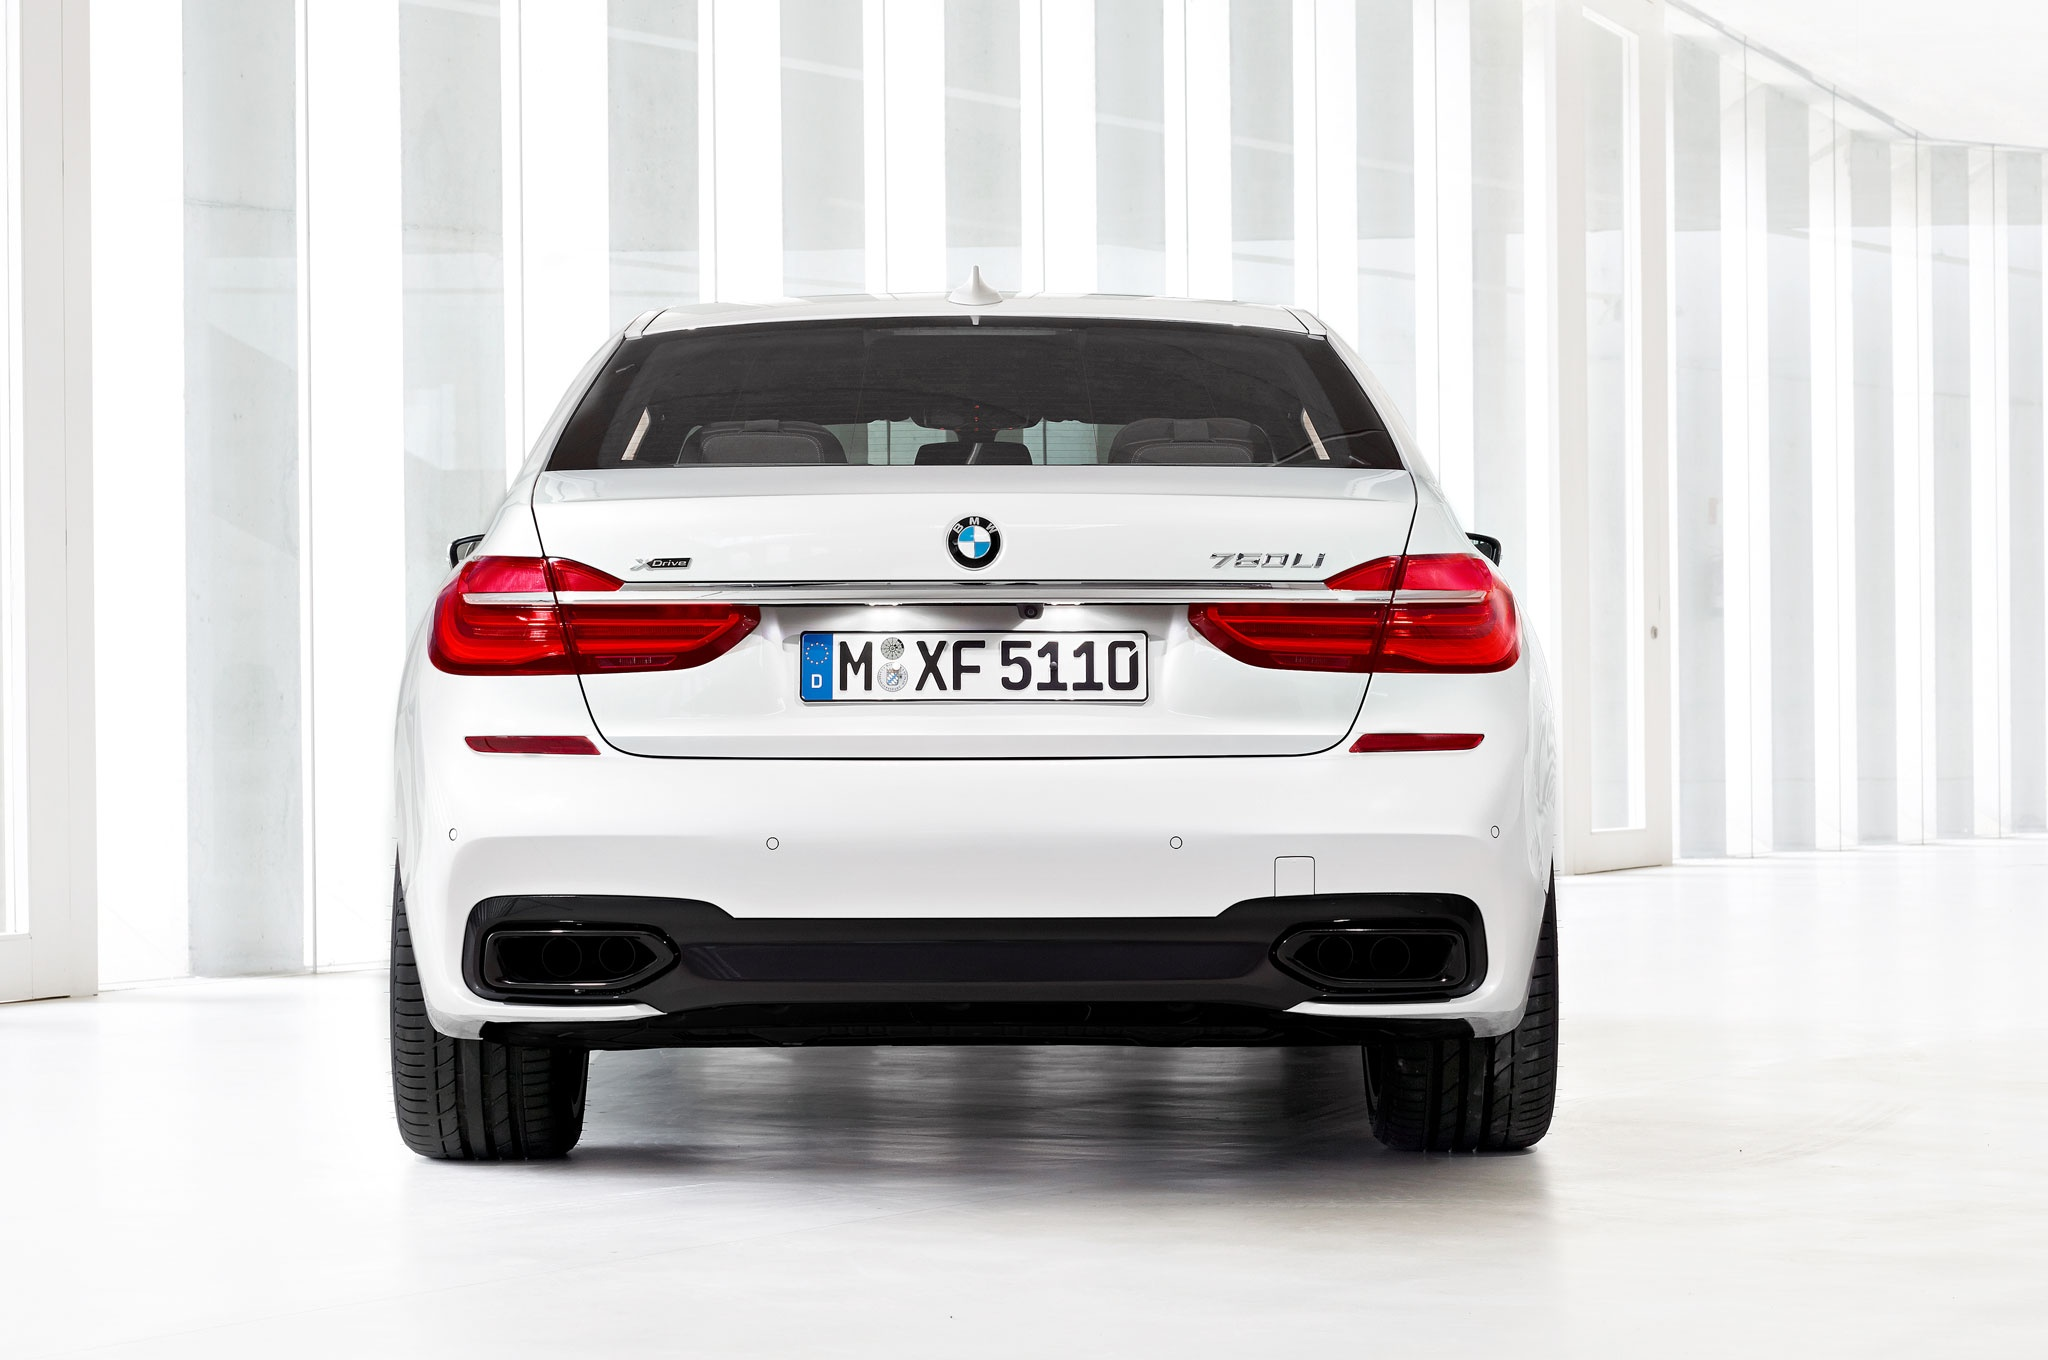 Bmw 750li Car Modified Wallpaper Best Of 23 Things You Should Know About the 2016 Bmw 7 Series-536 Of New Bmw 750li Car Modified Wallpaper